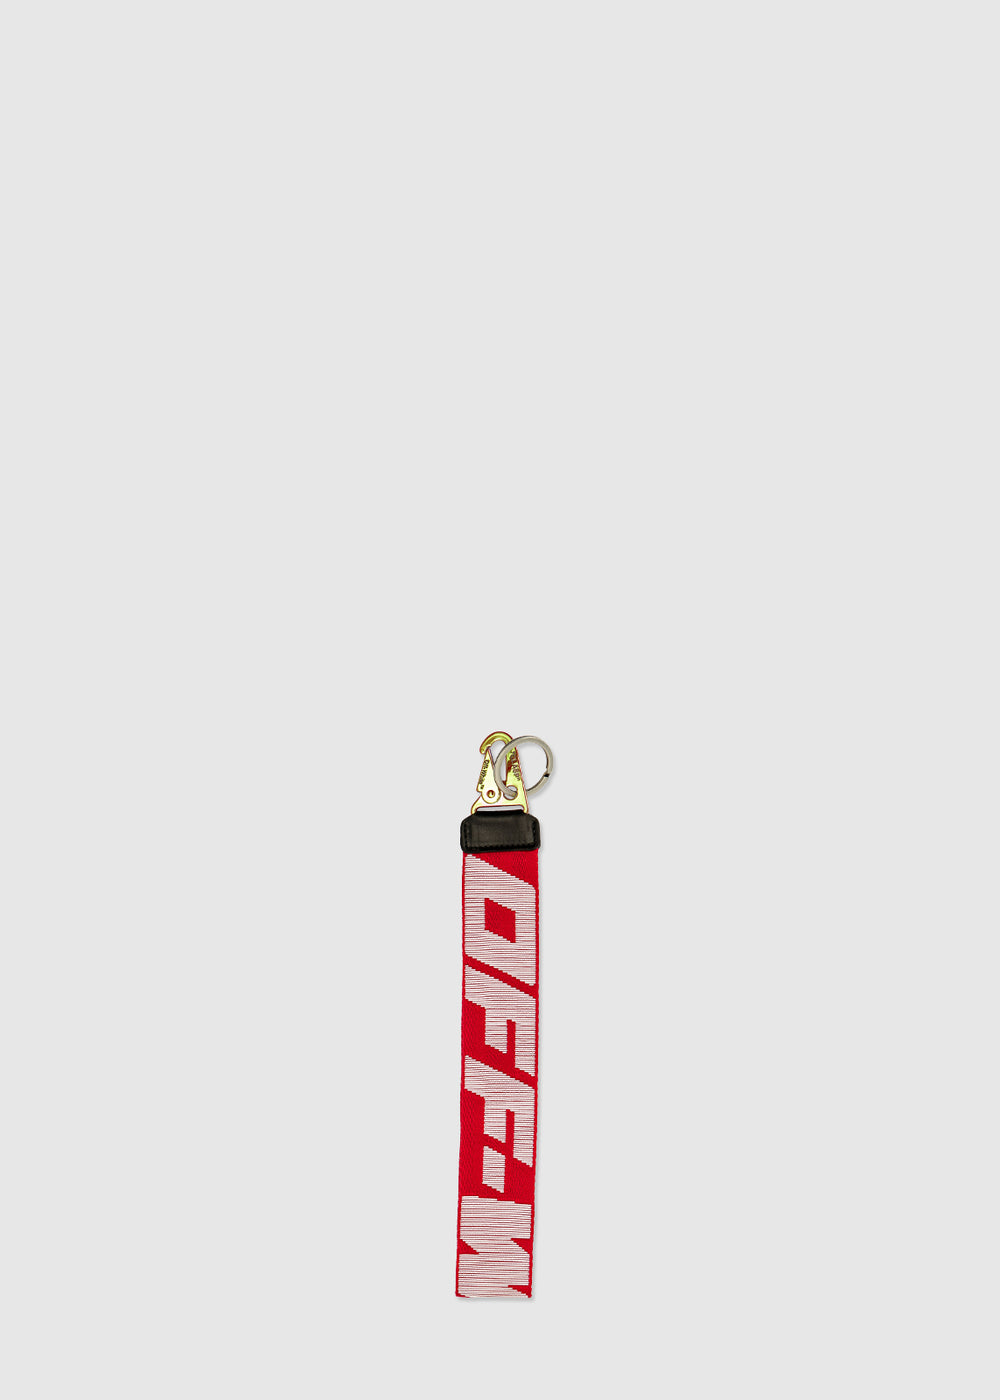 ow-2-0-key-hldr-omzg019s20f420412001-red-wht-1